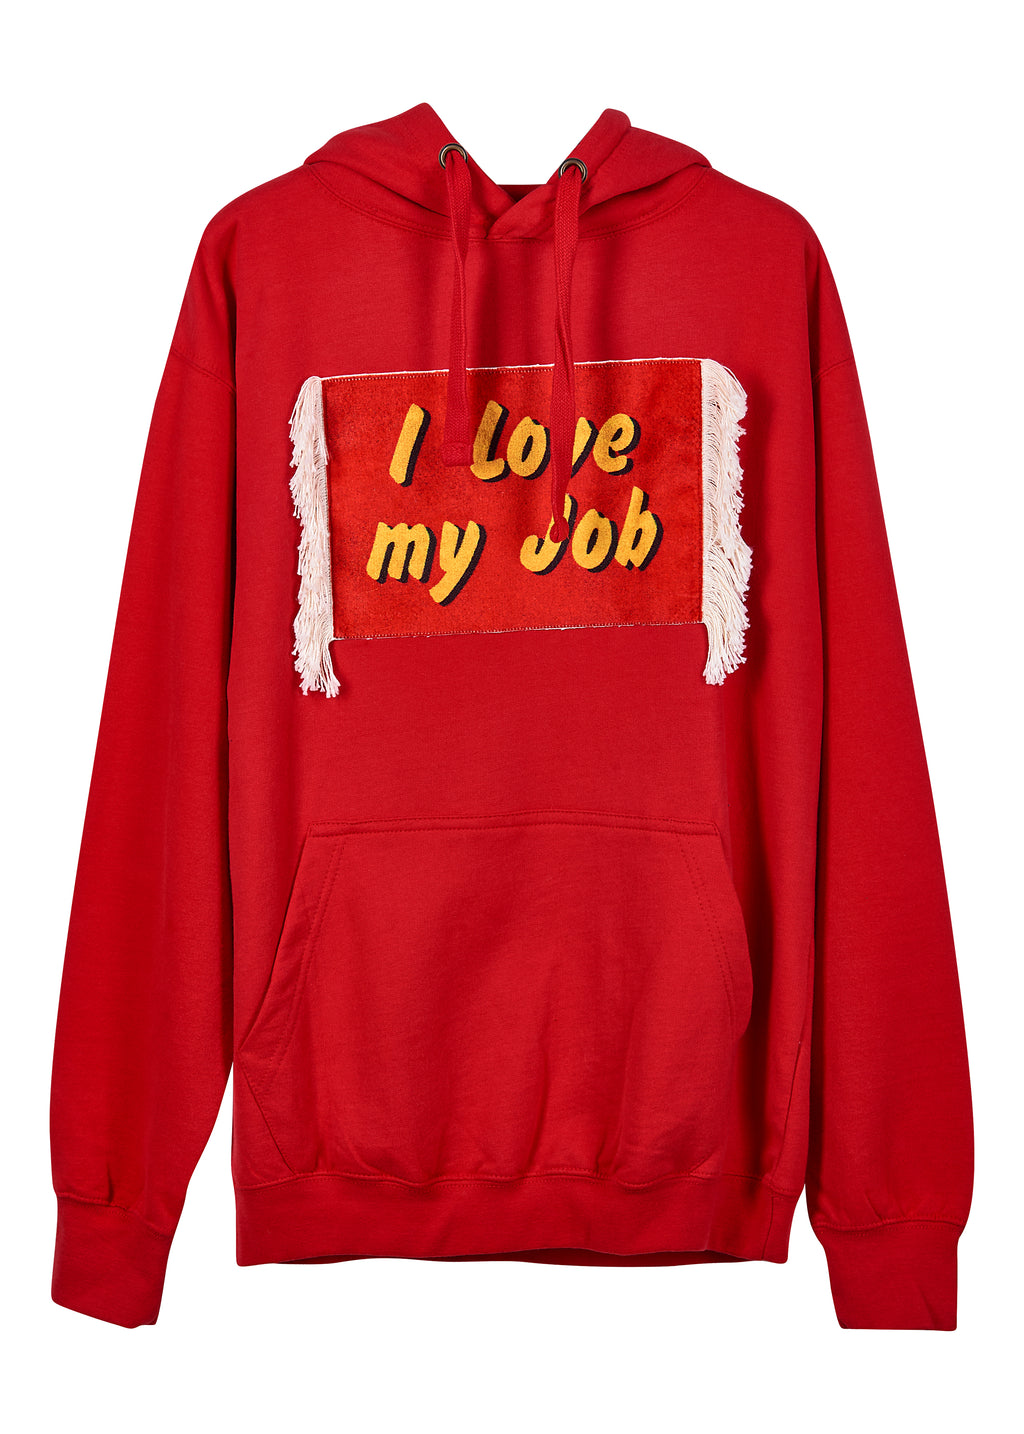 House of Holland x @SWEENEYTODDLA 'I LOVE MY JOB' HOODIE